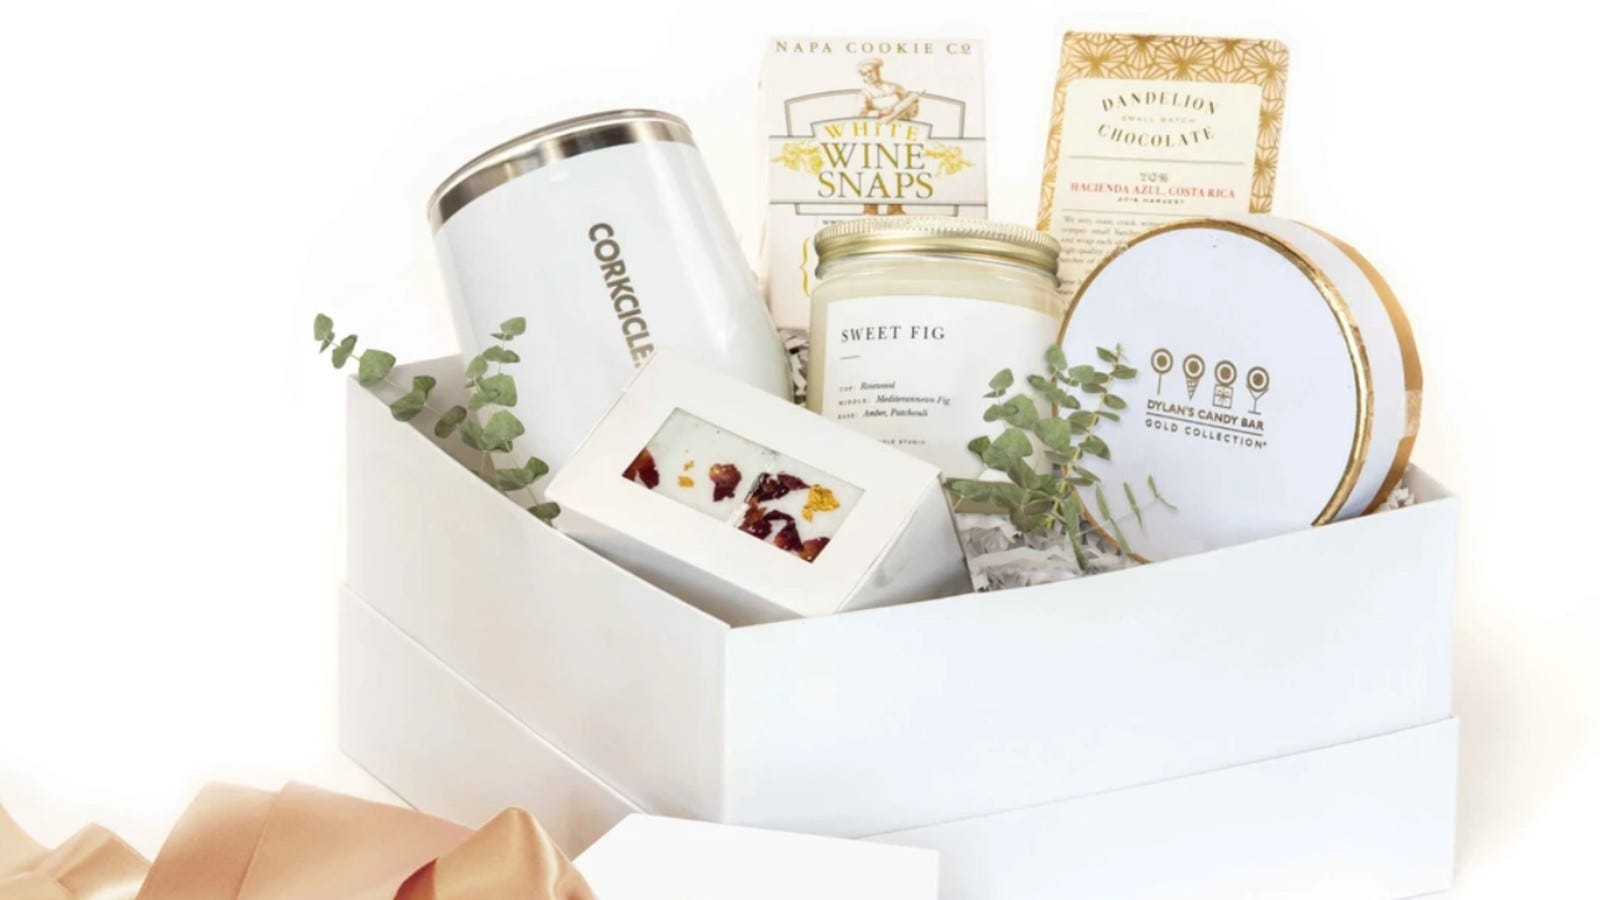 white gift box with eucalyptus sprigs for decoration, and a variety of gifts including a wine tumbler, candle, and chocolates